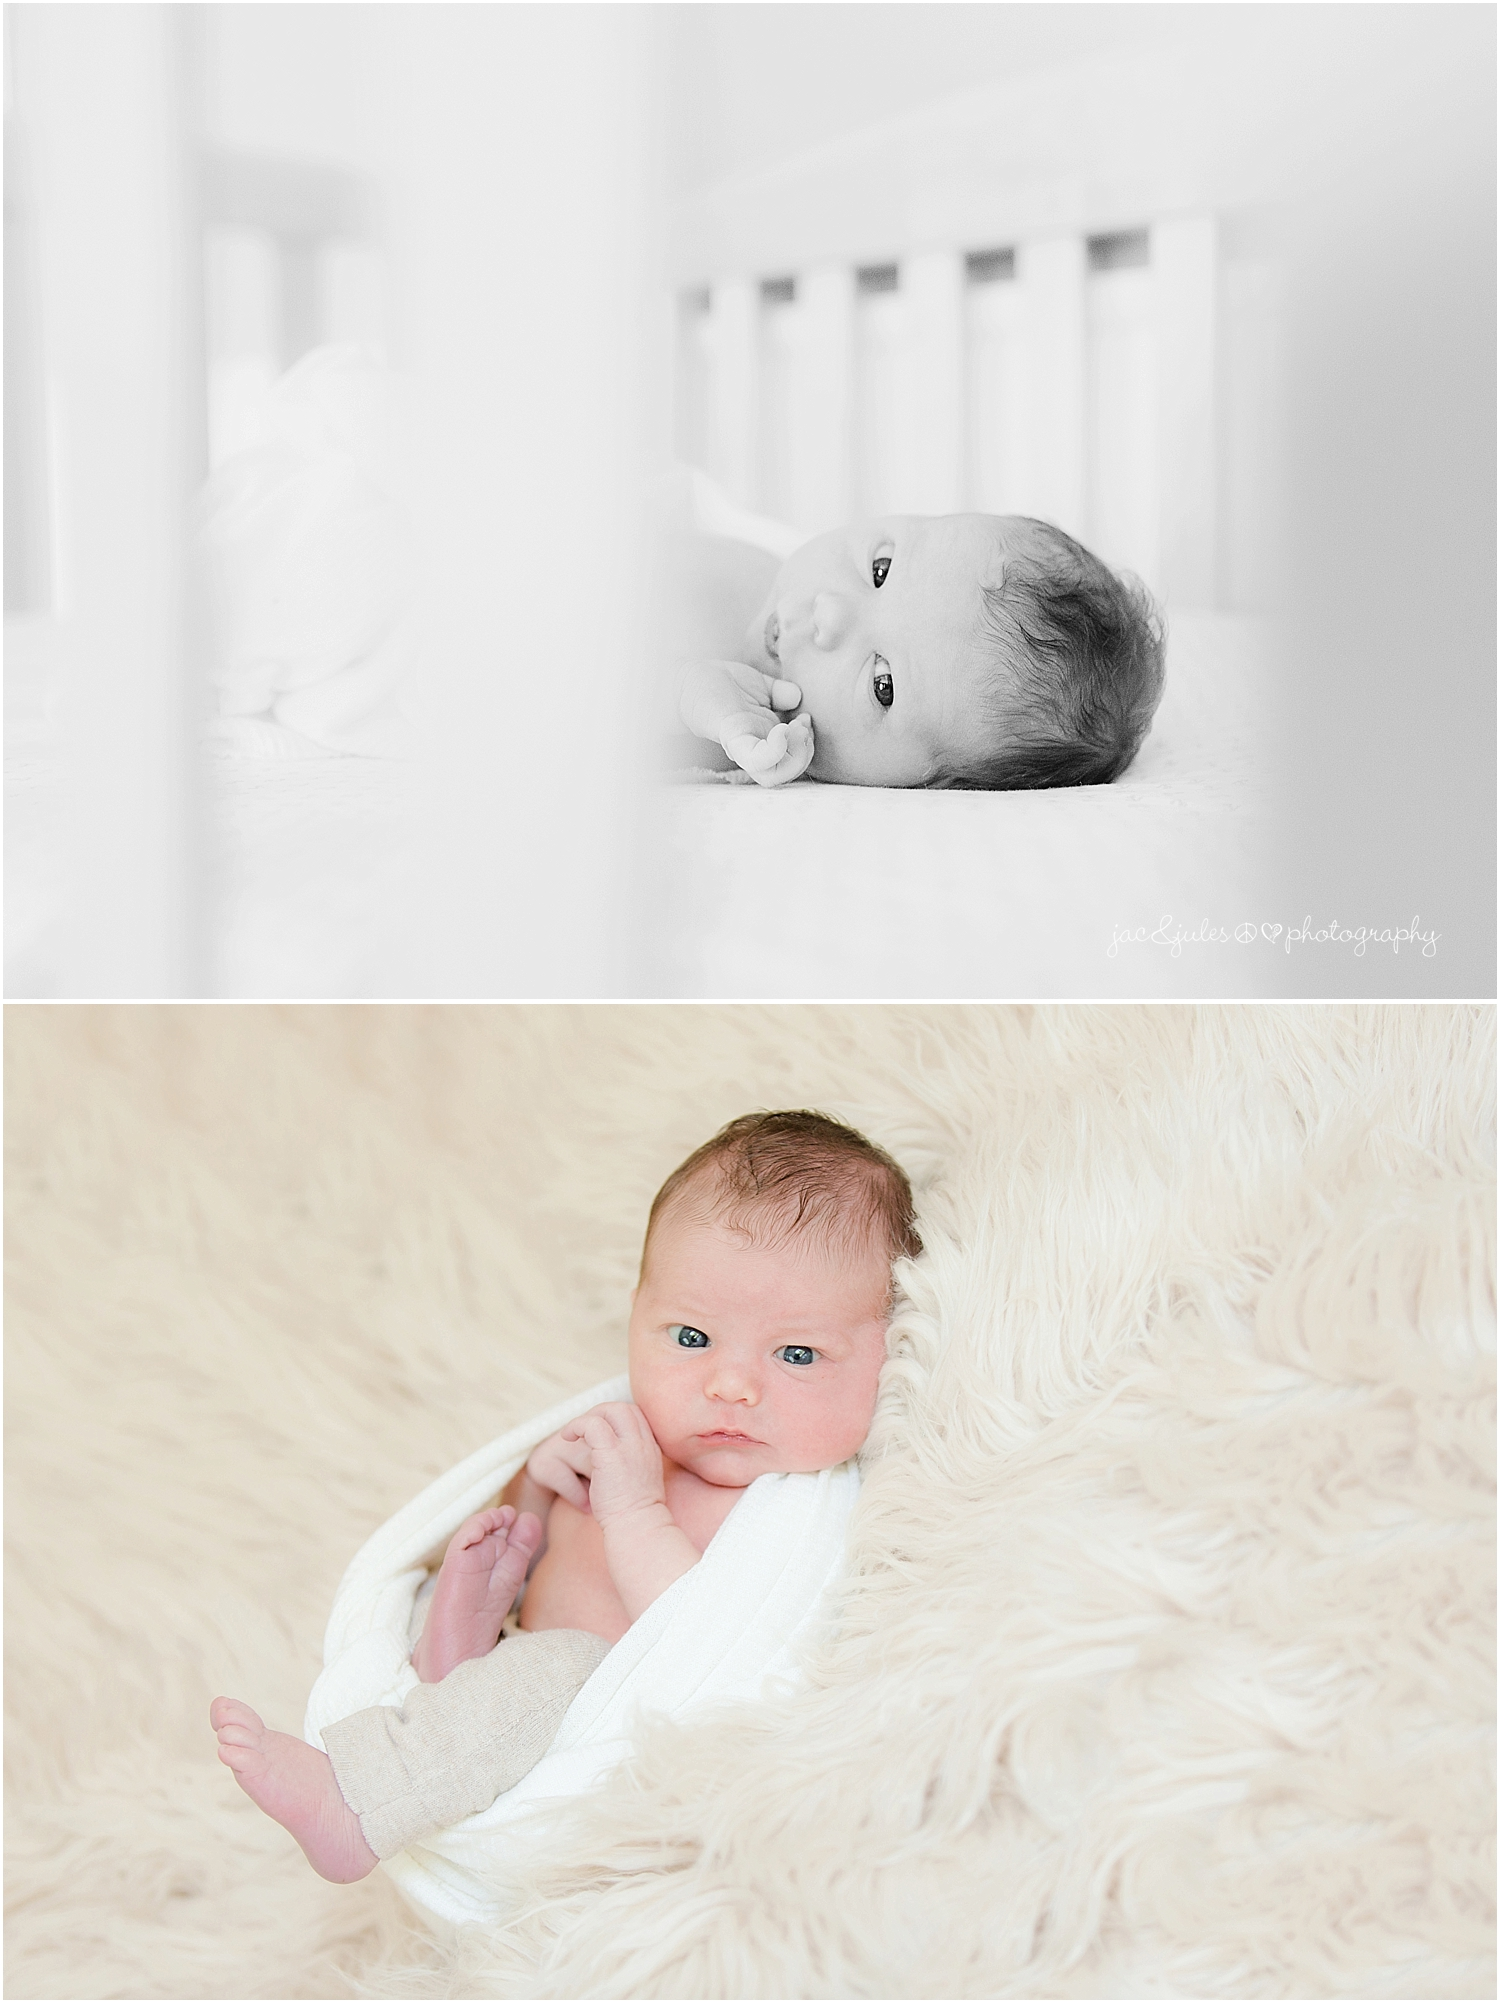 jacnjules photographs newborn baby boy and his family in his nursery in toms river nj